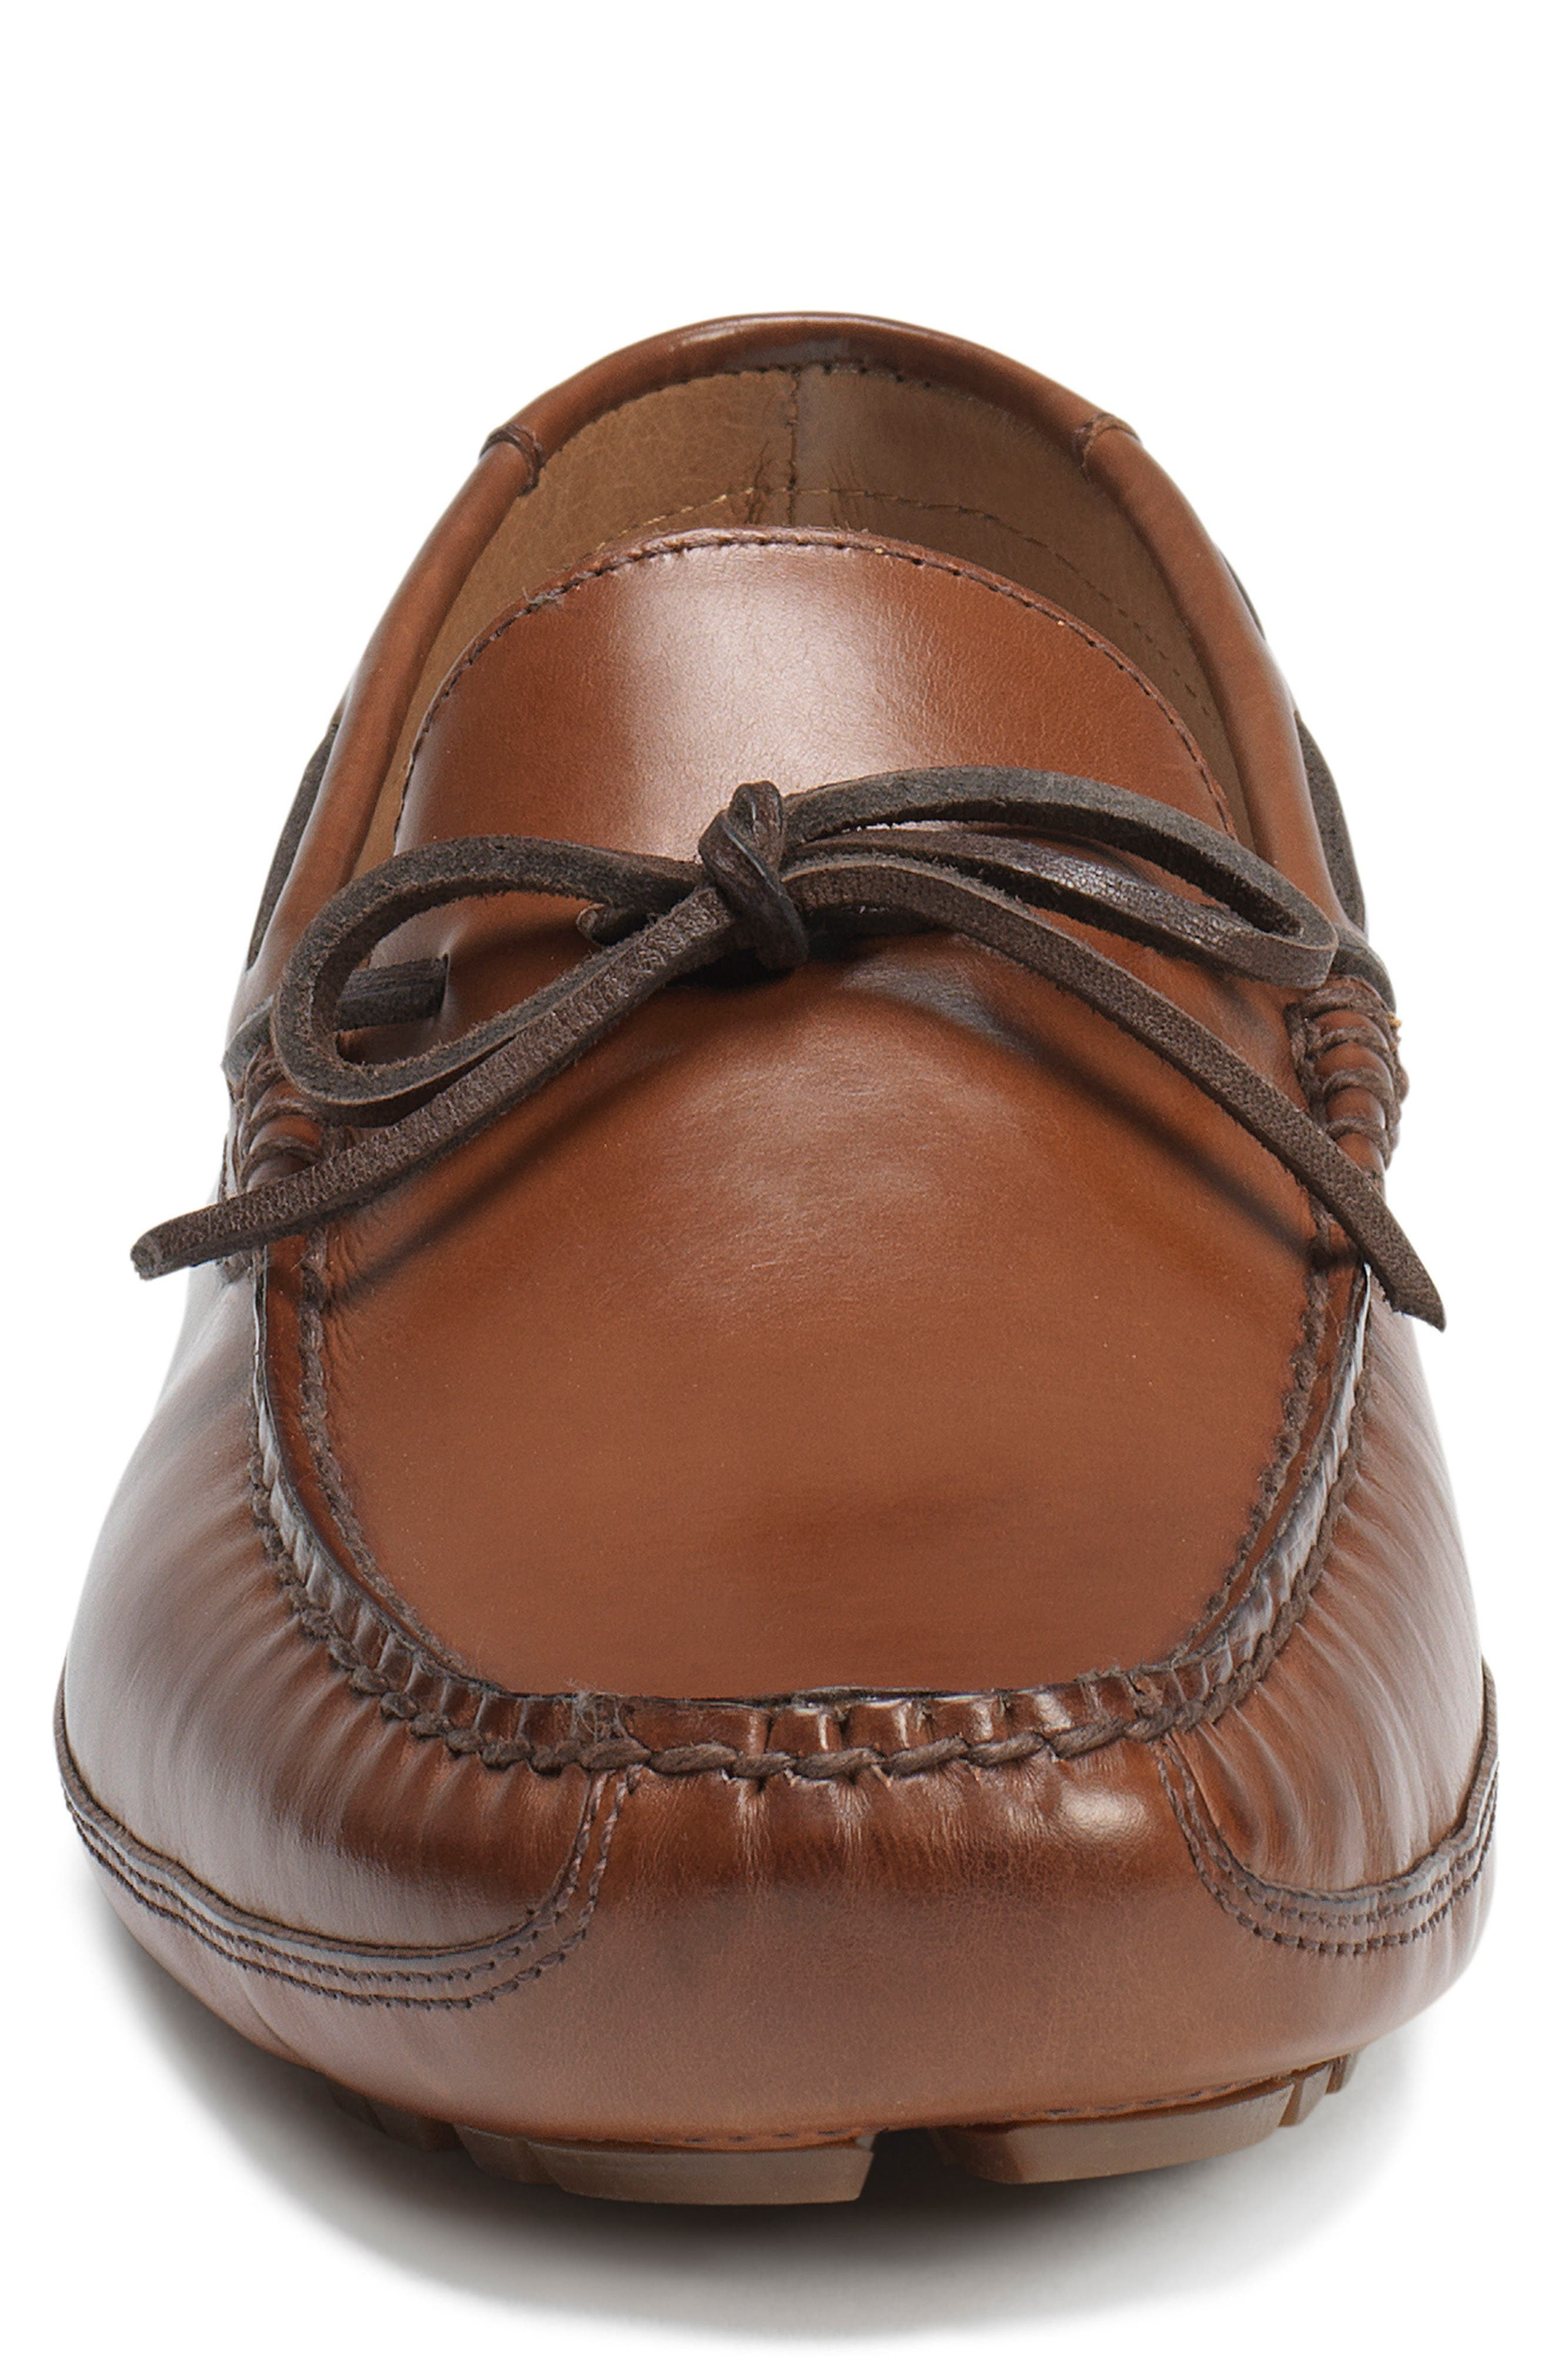 Dillion Driving Loafer,                             Alternate thumbnail 3, color,                             BROWN LEATHER